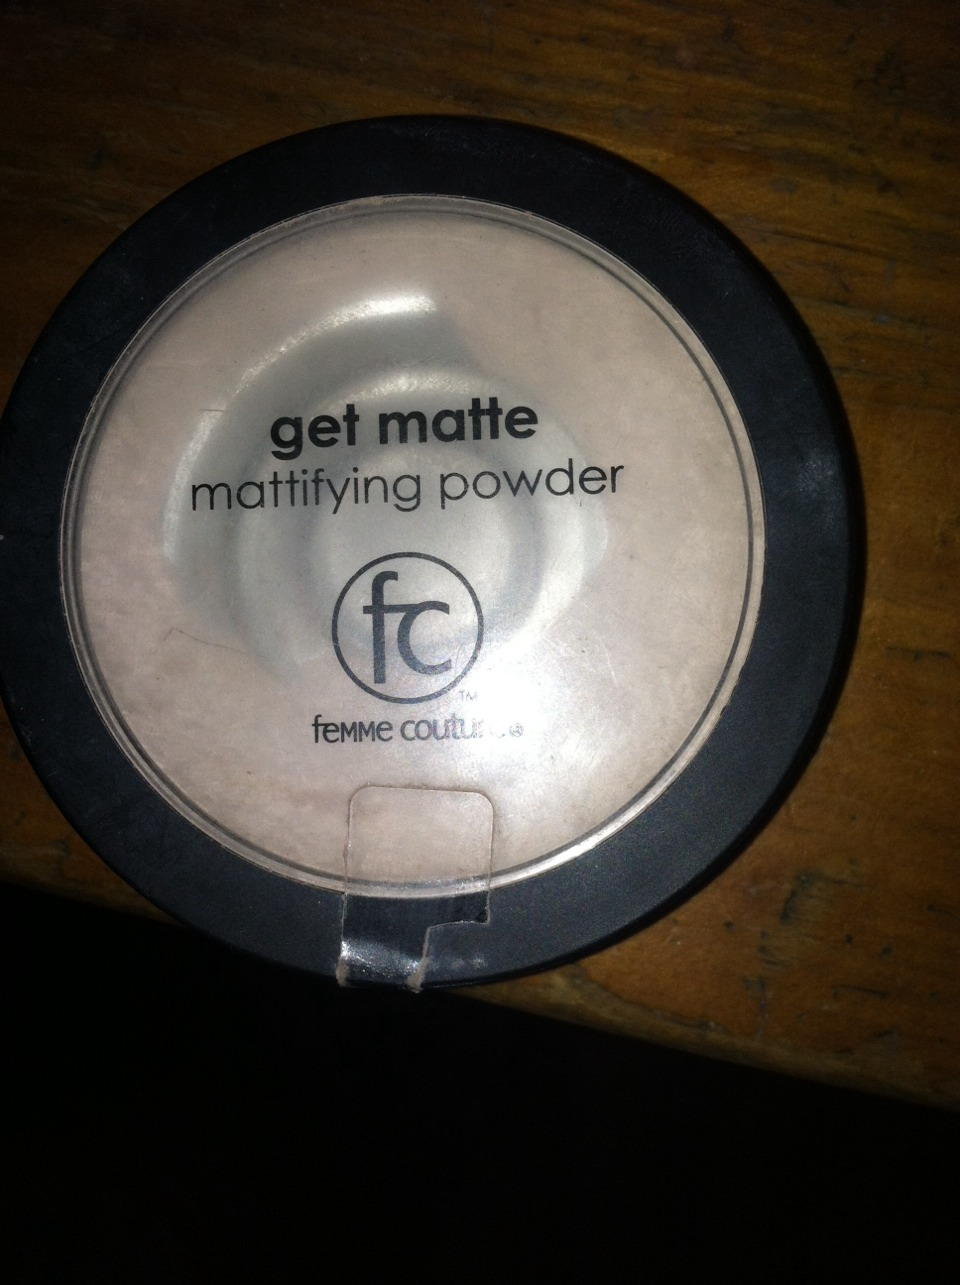 Next you use mattifying powder. This one is my favorite this one also cost around $12. So you use the makeup brush and spread evenly around your face. This will stop your face from looking oily after the liquid foundation. You can use this through out the day also to help with the oilyness.